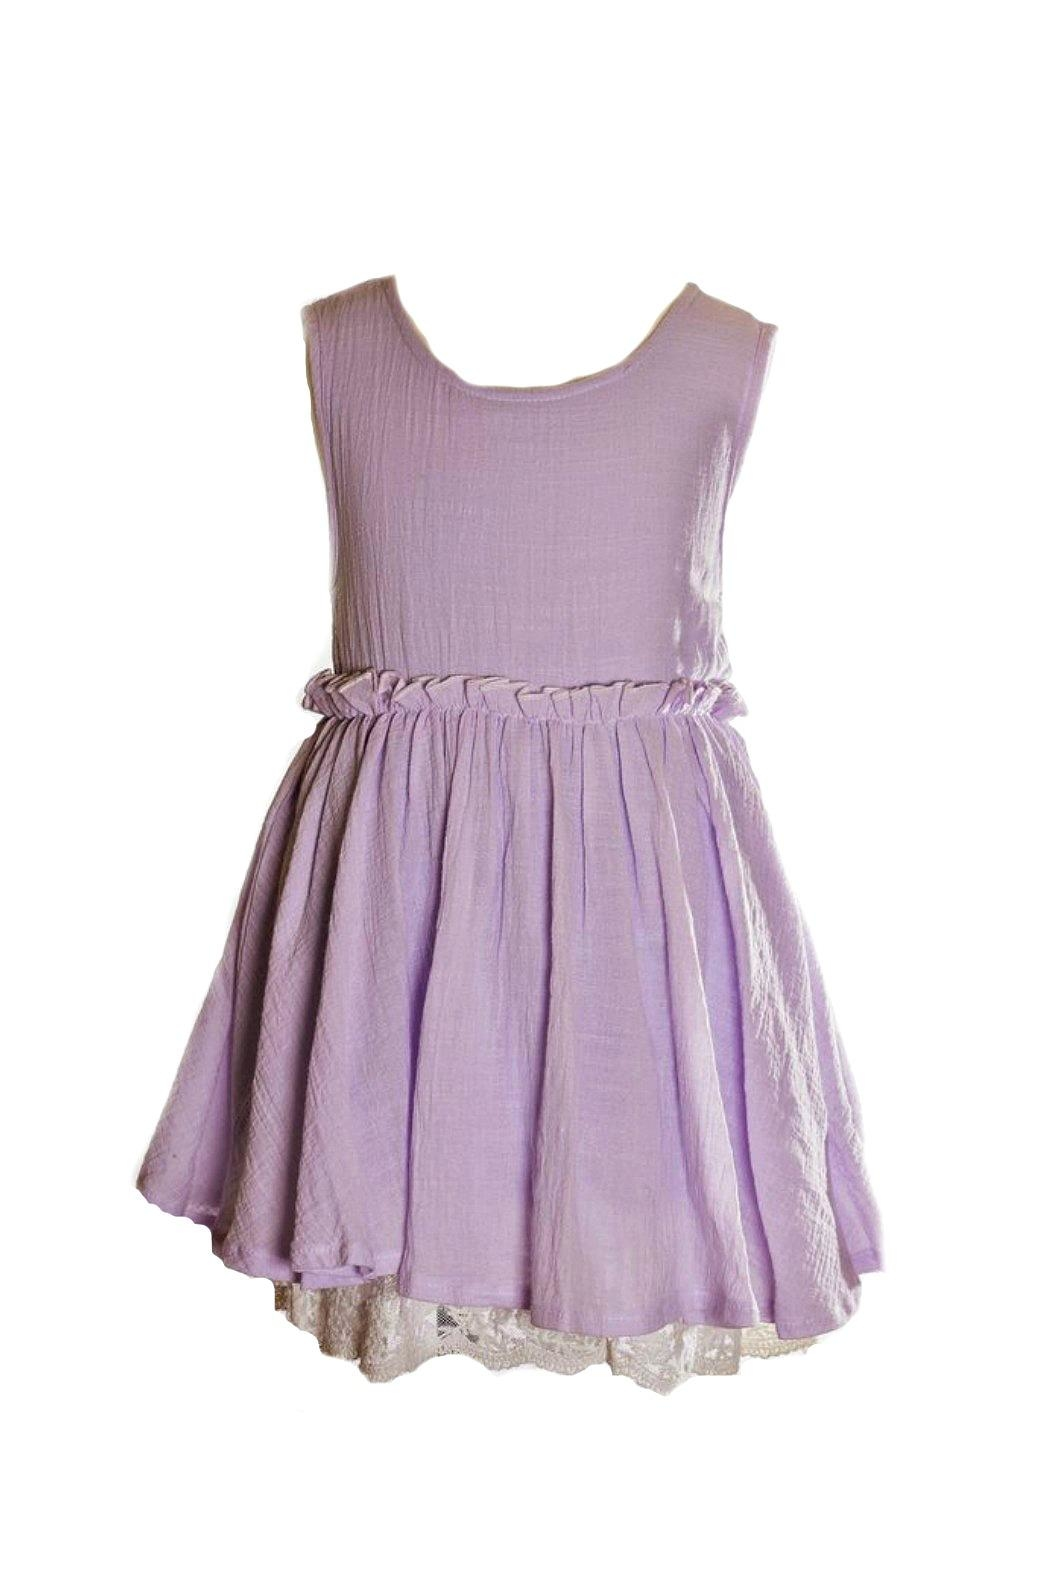 ML Kids Lavender Dress With-Lace-Hemline - Main Image